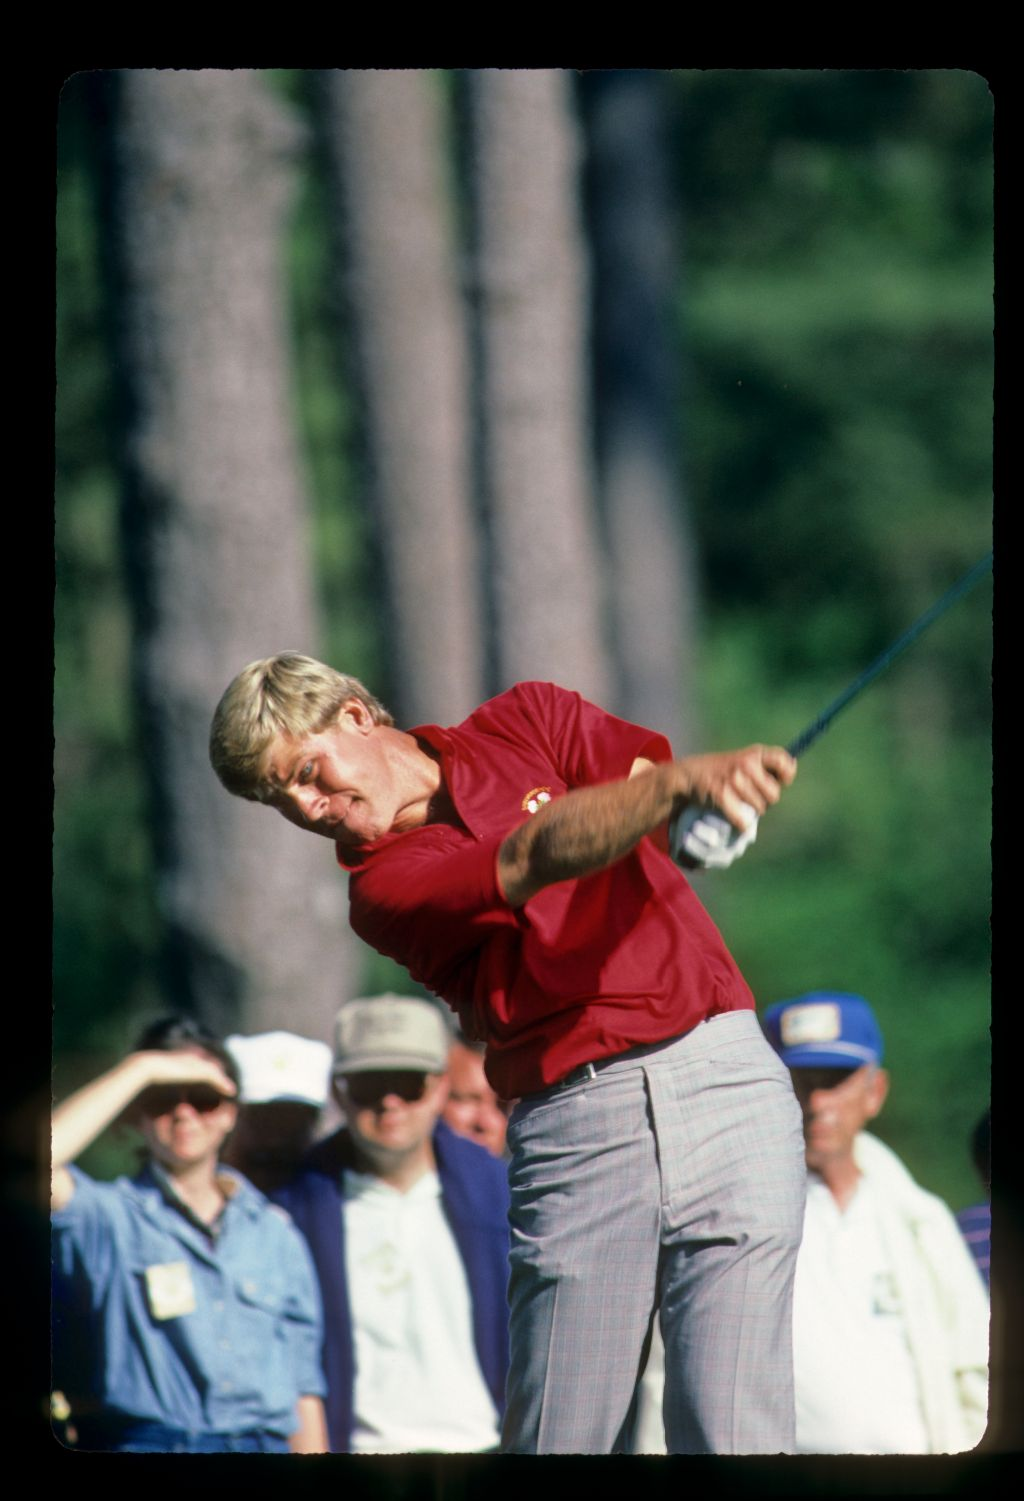 Hal Sutton extending through the ball on the tee during the 1986 Masters